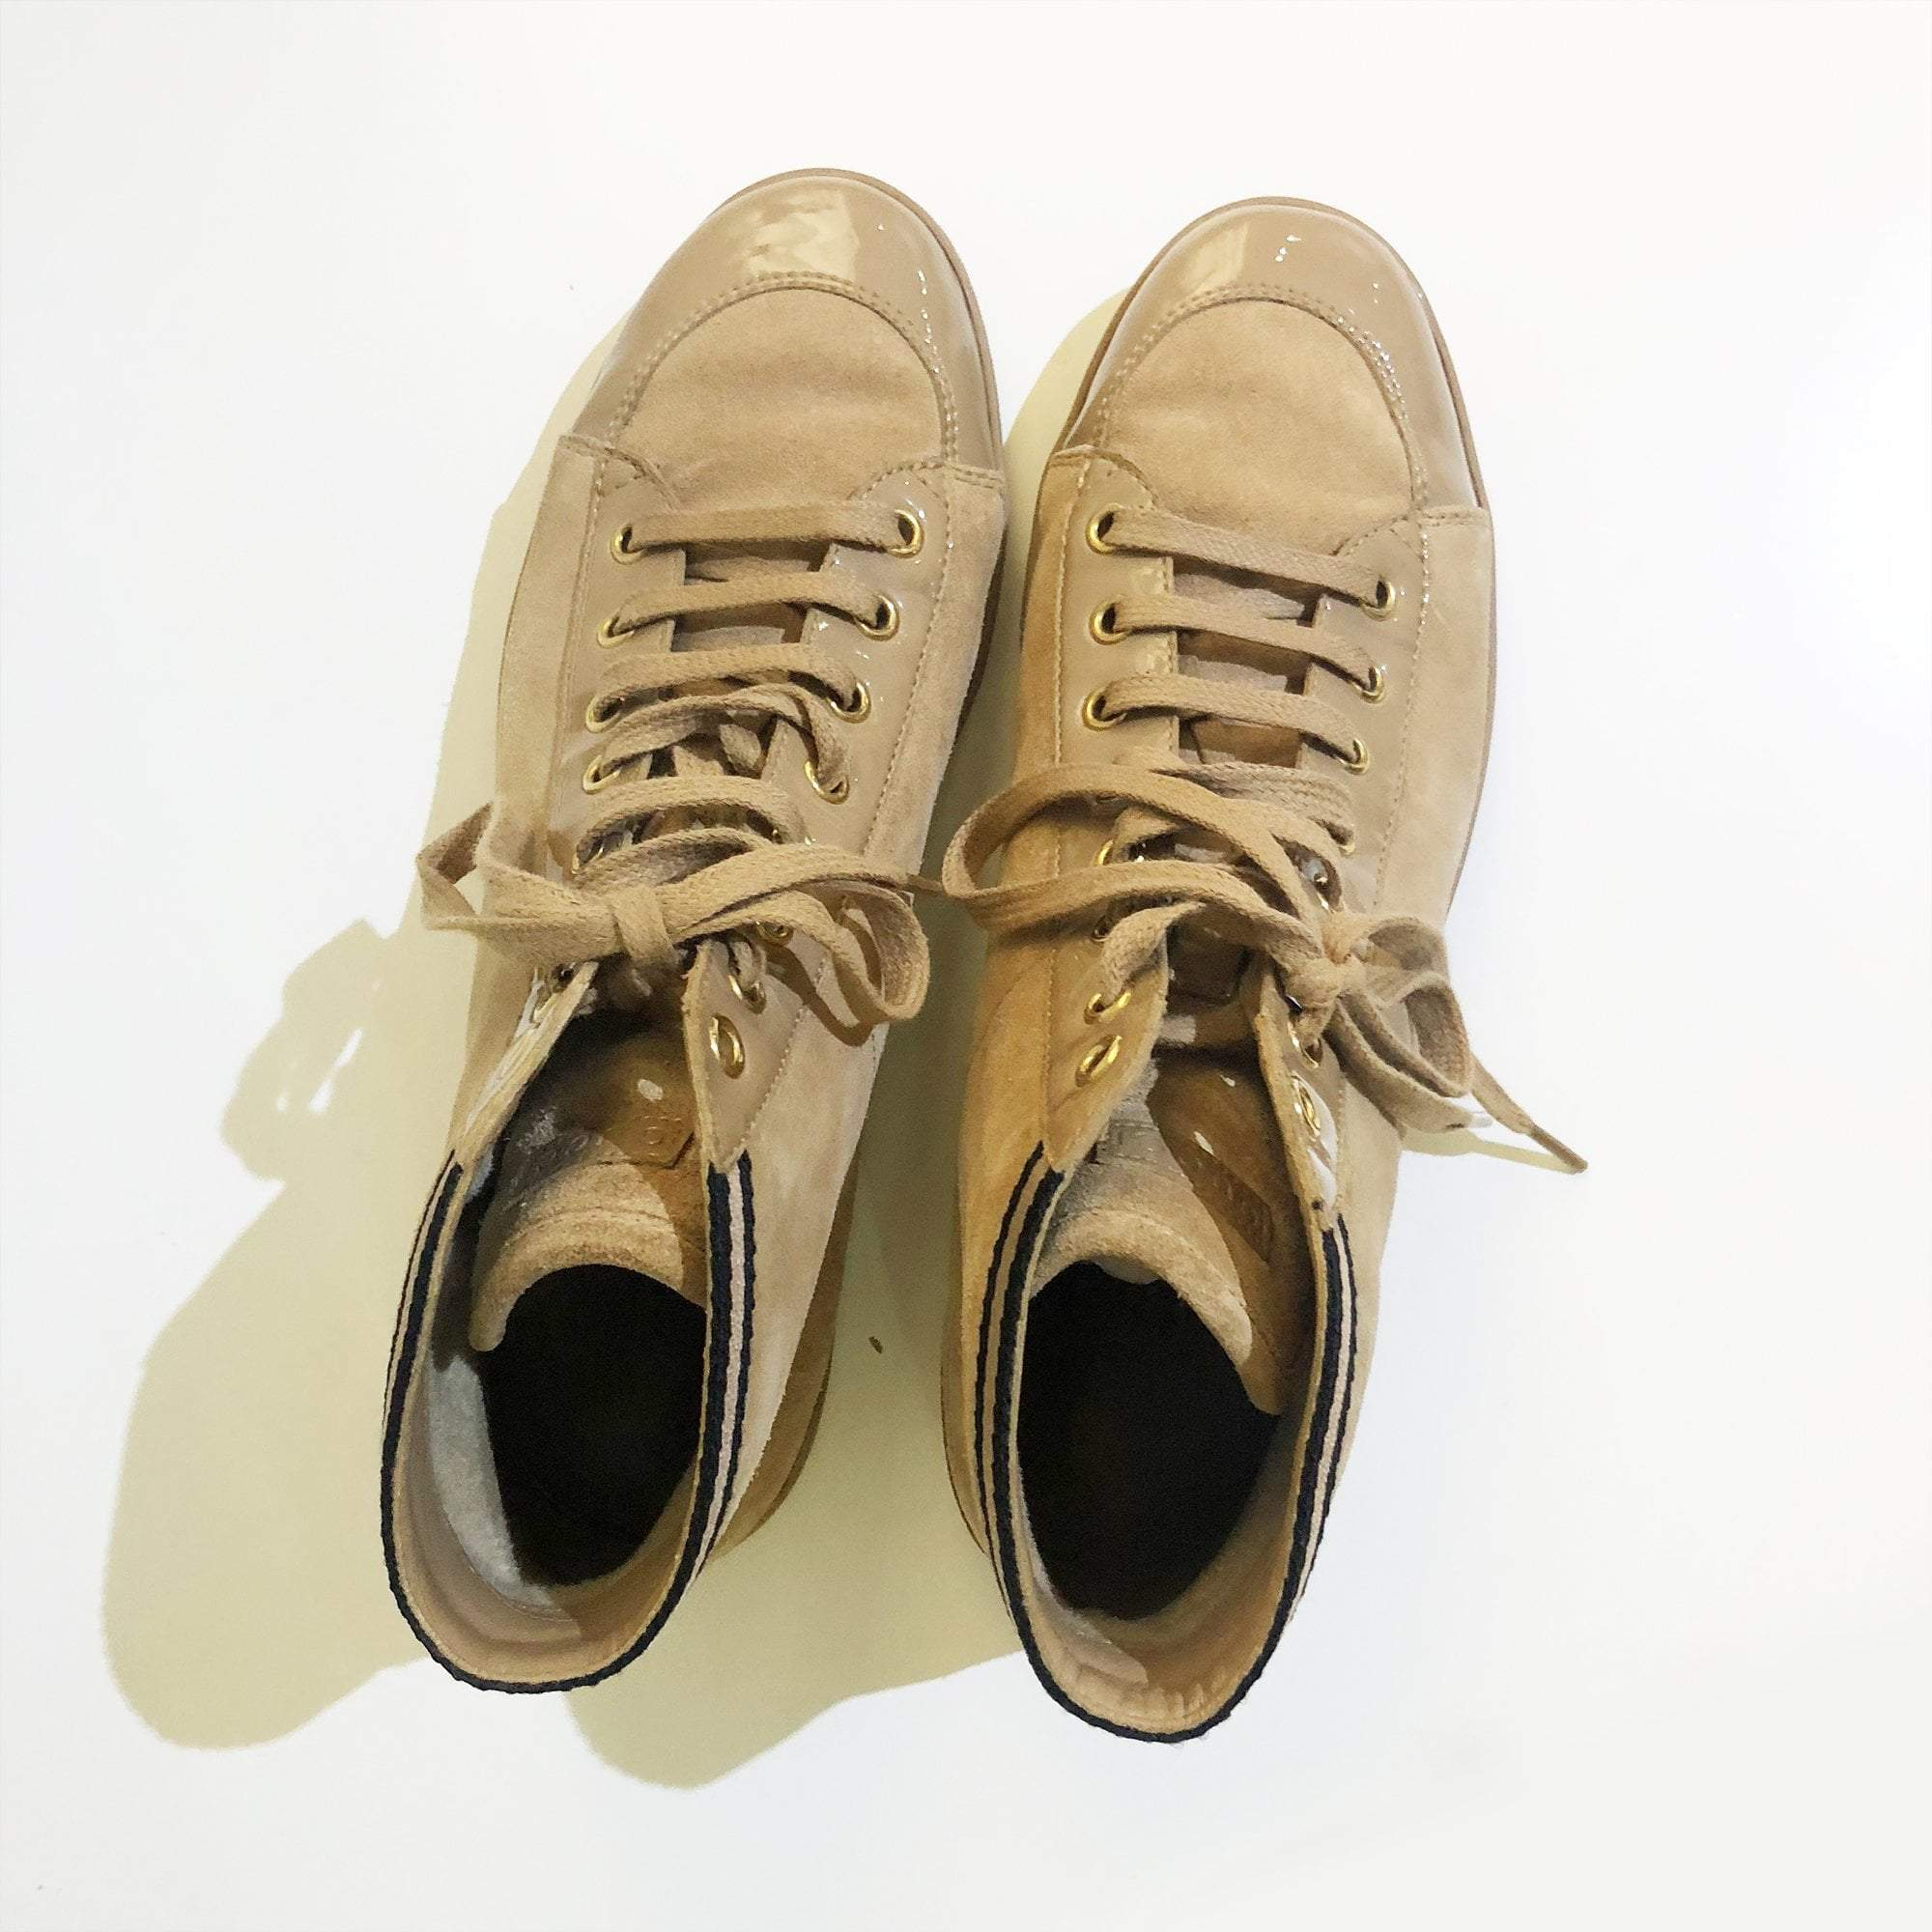 Gucci High Top Tan Suede Sneakers